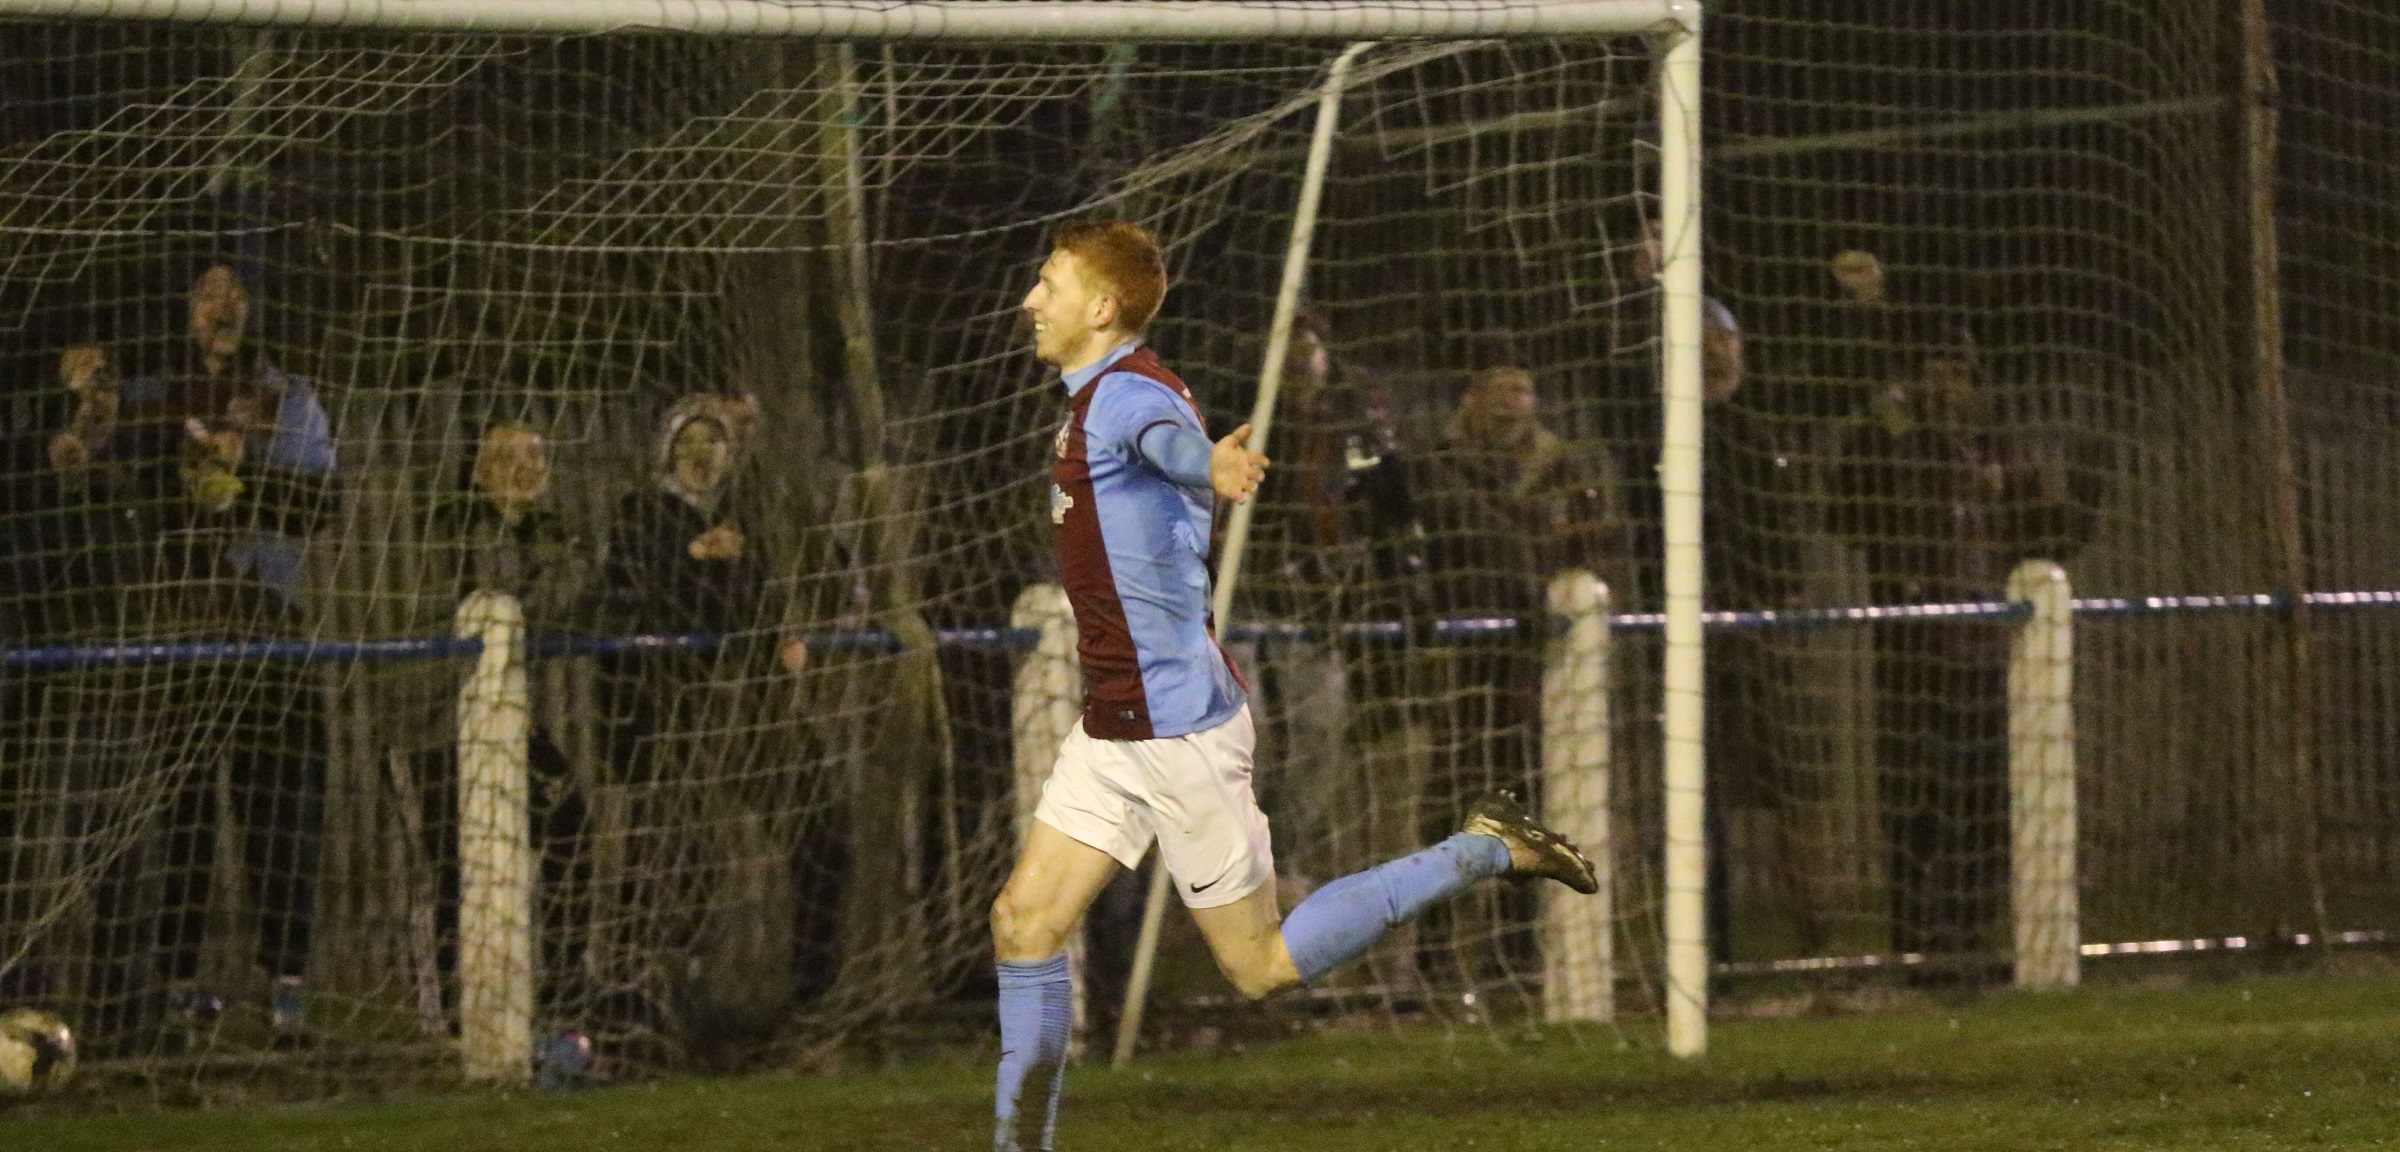 Newcastle Benfield 1-2 South Shields: Mariners into League Cup semi-final after dramatic finale